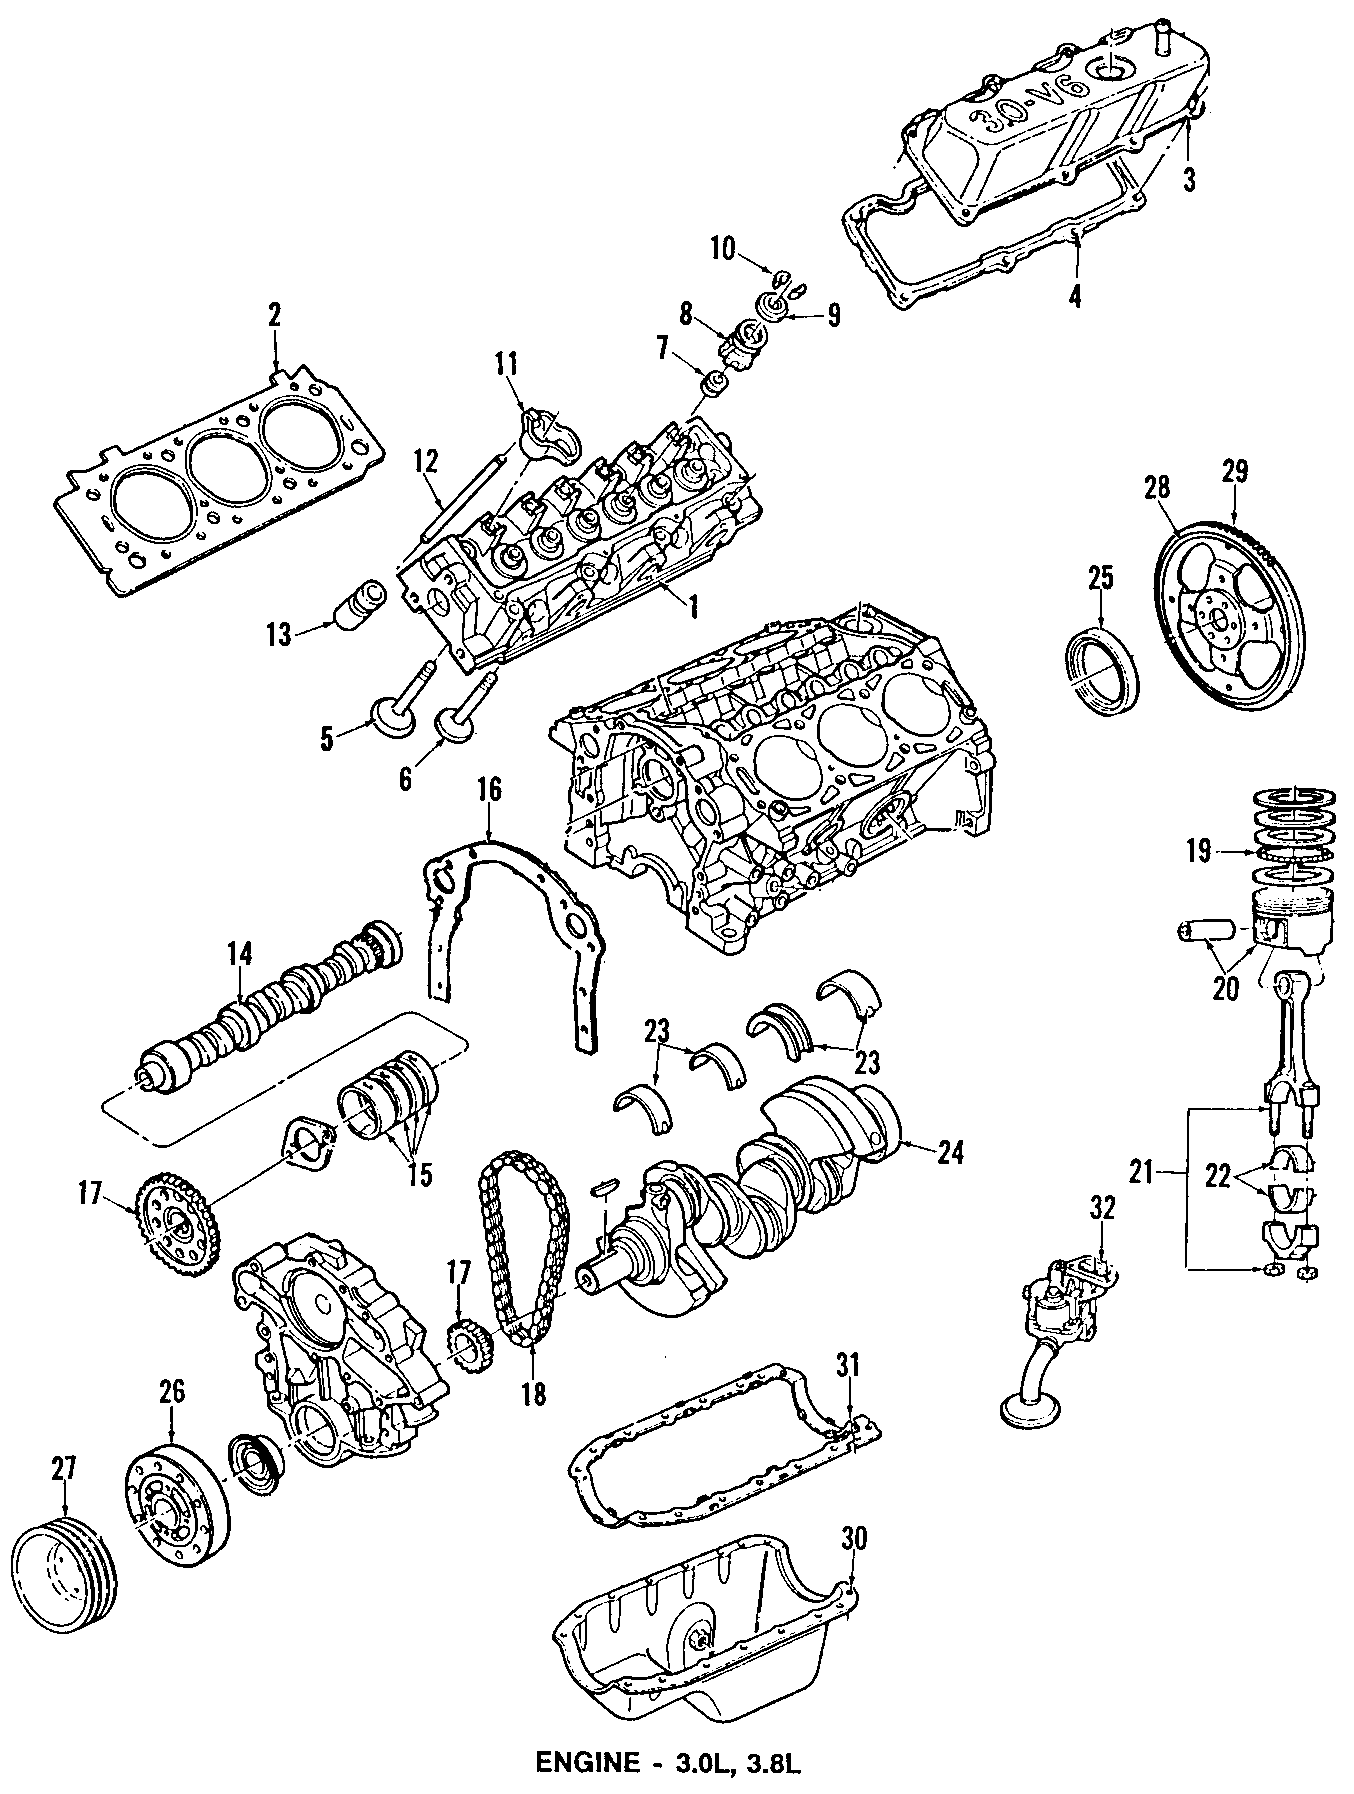 Ford Aerostar Timing Gear Engine Set